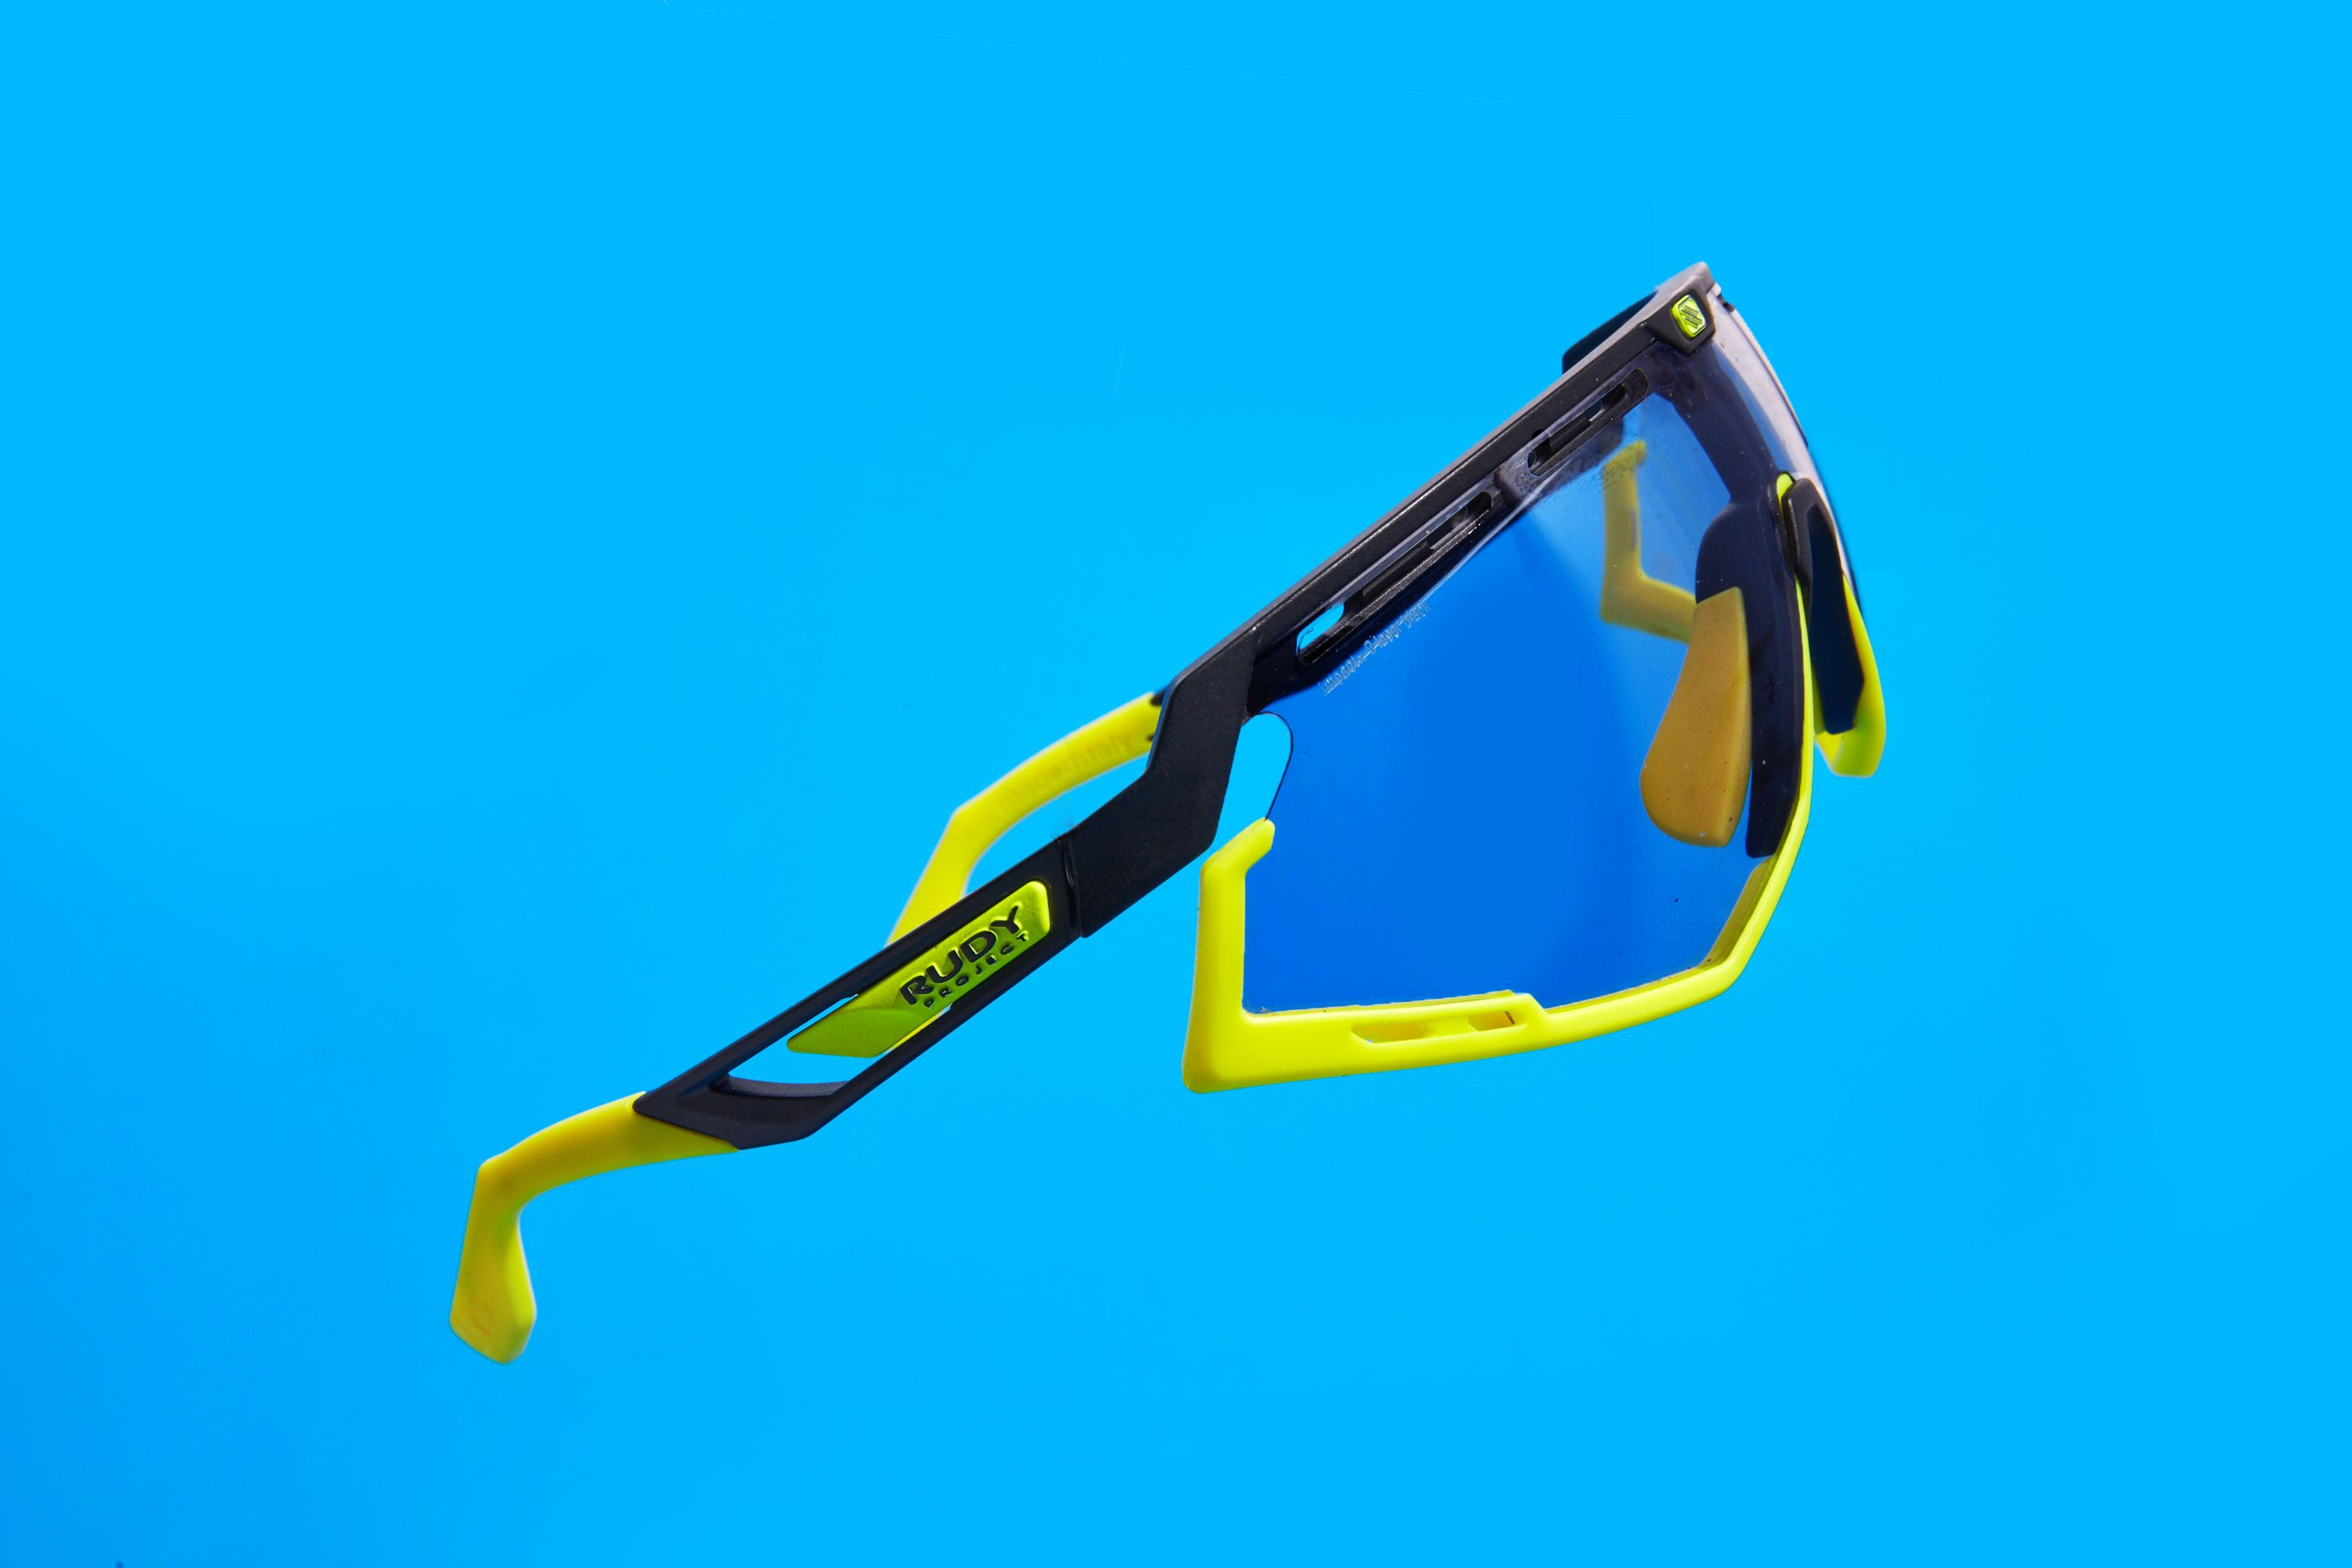 8ed3eab72b Rudy Project Defender Review - Cycling Sunglasses Tested